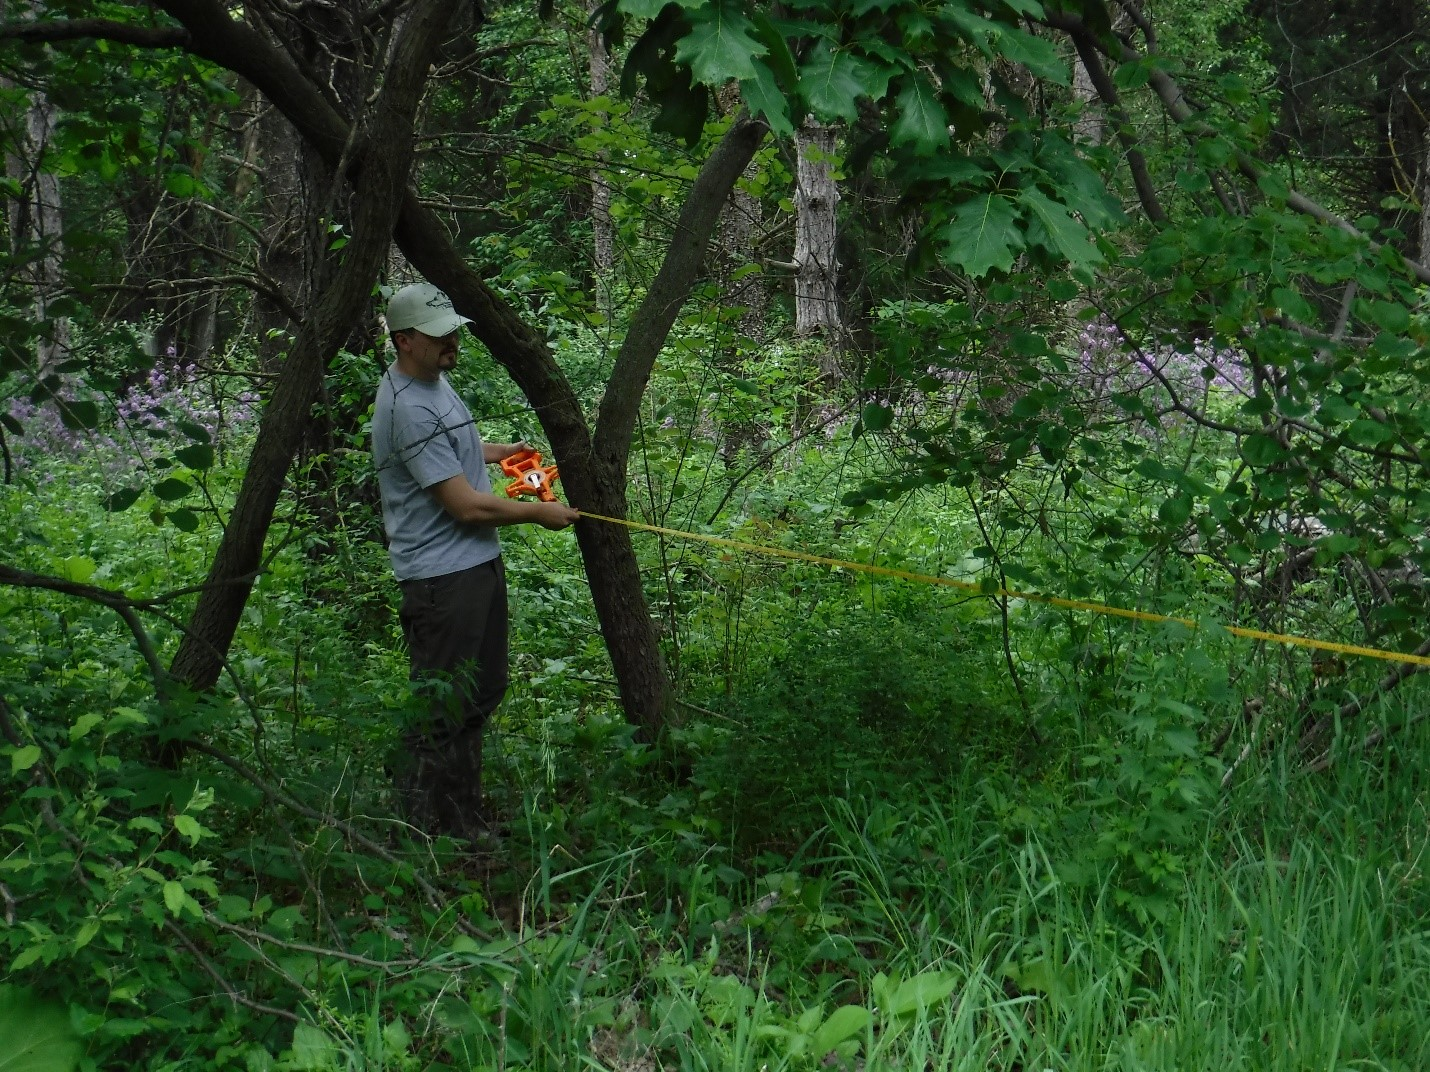 Baxter Seguin measuring distance to trees for stand density at a sampling location east of Lincoln, NE. Photo: Tayelor Gosselin